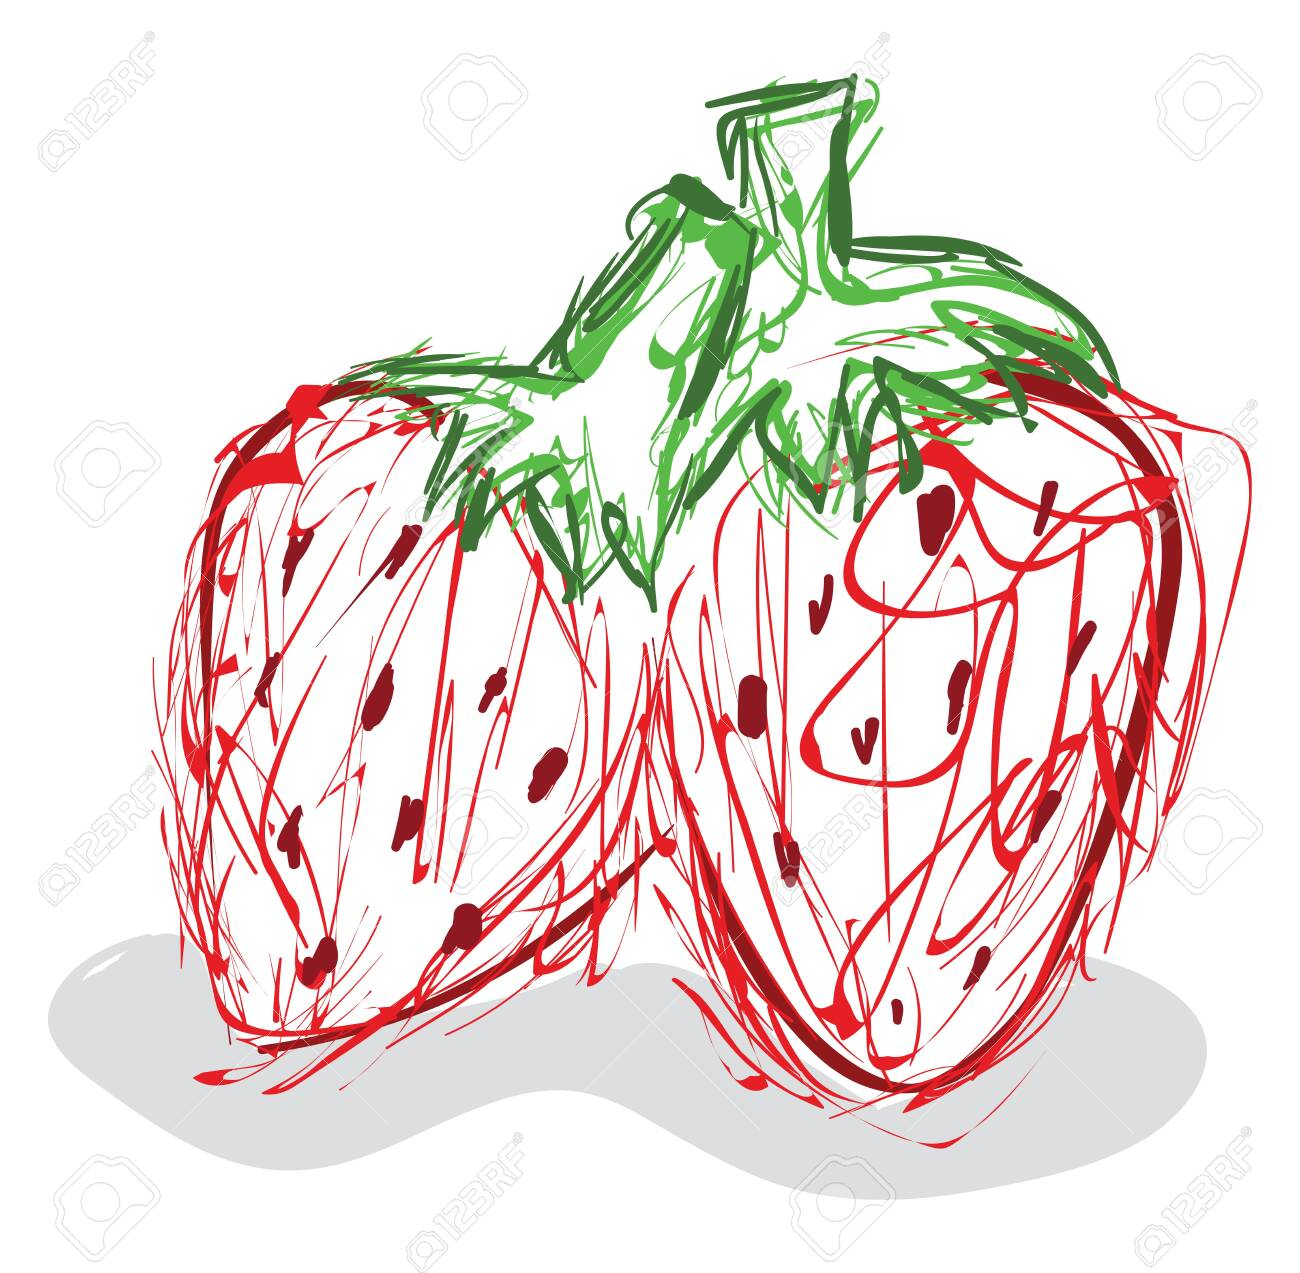 Child sketch drawing of a couple of red strawberries with stout green stalks stands beside each other, vector, color drawing or illustration. - 132676363